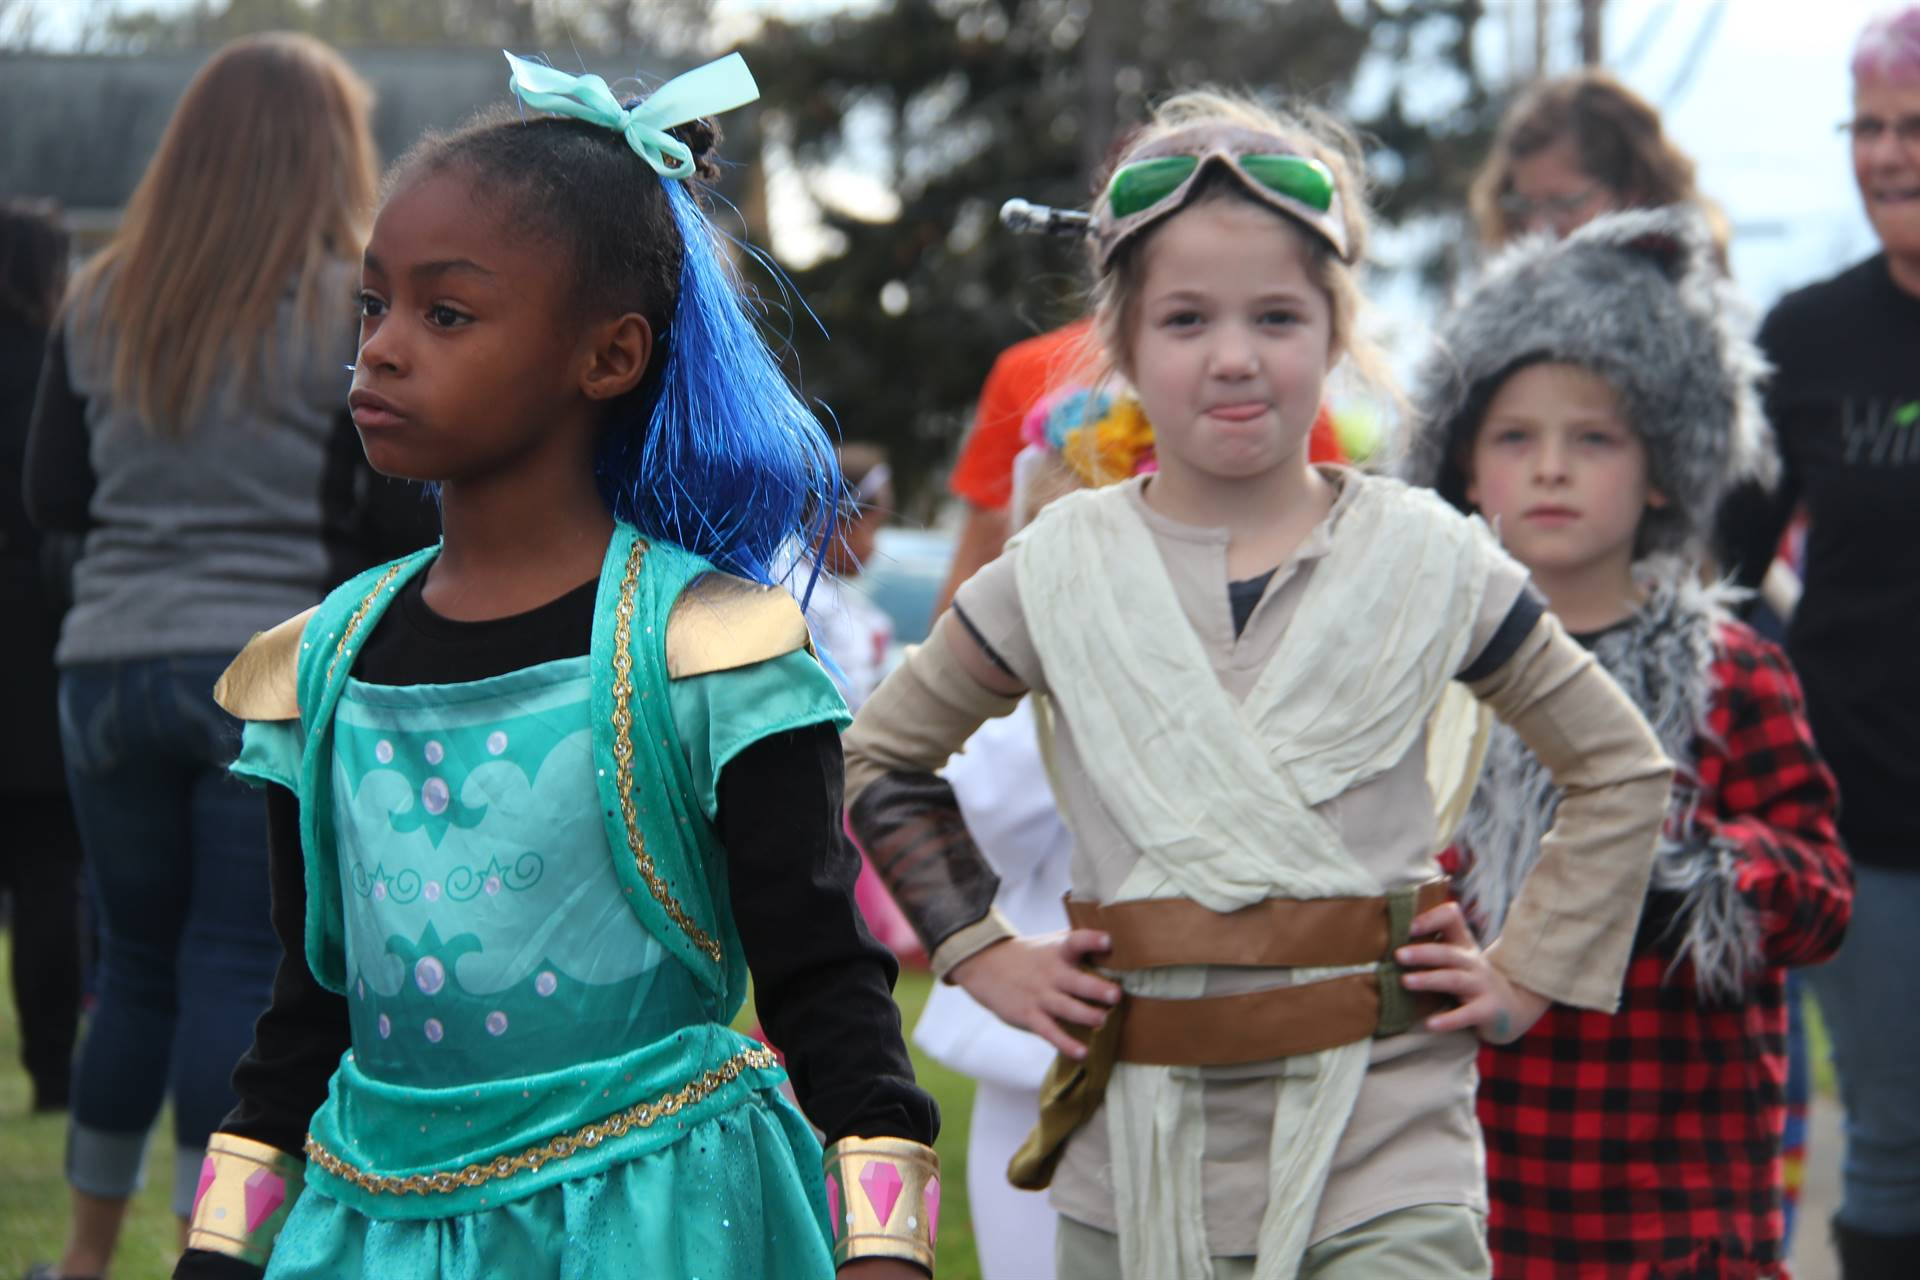 students dressed as princess and rey from star wars